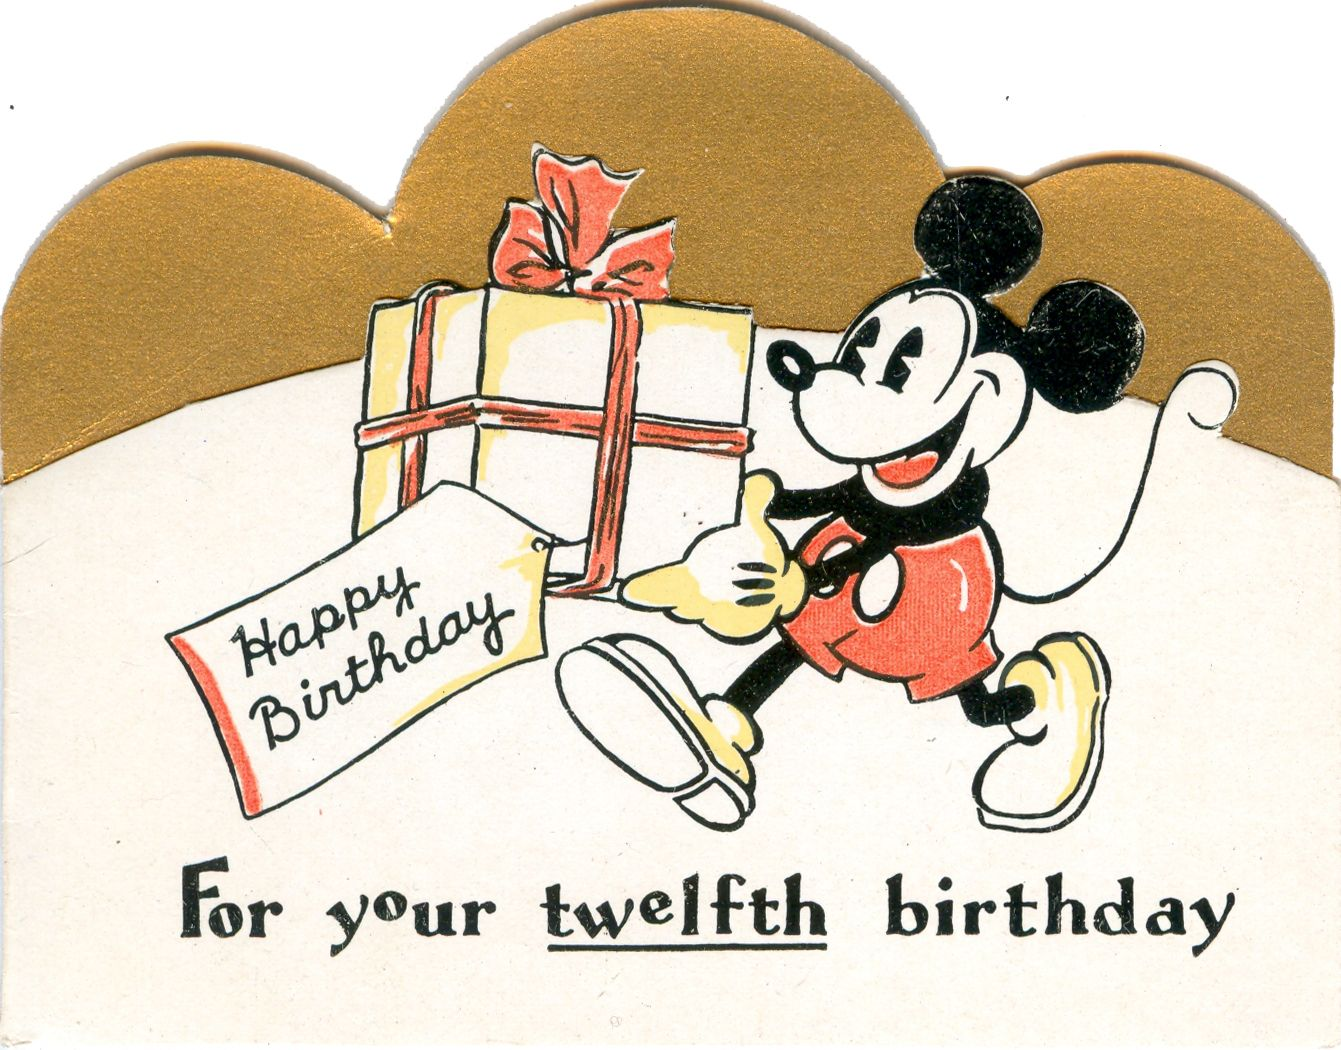 10 B 351 Mickey Mouse 12th Birthday Card Vintage Birthday Cards Mickey Mouse Birthday Party Vintage Greeting Cards